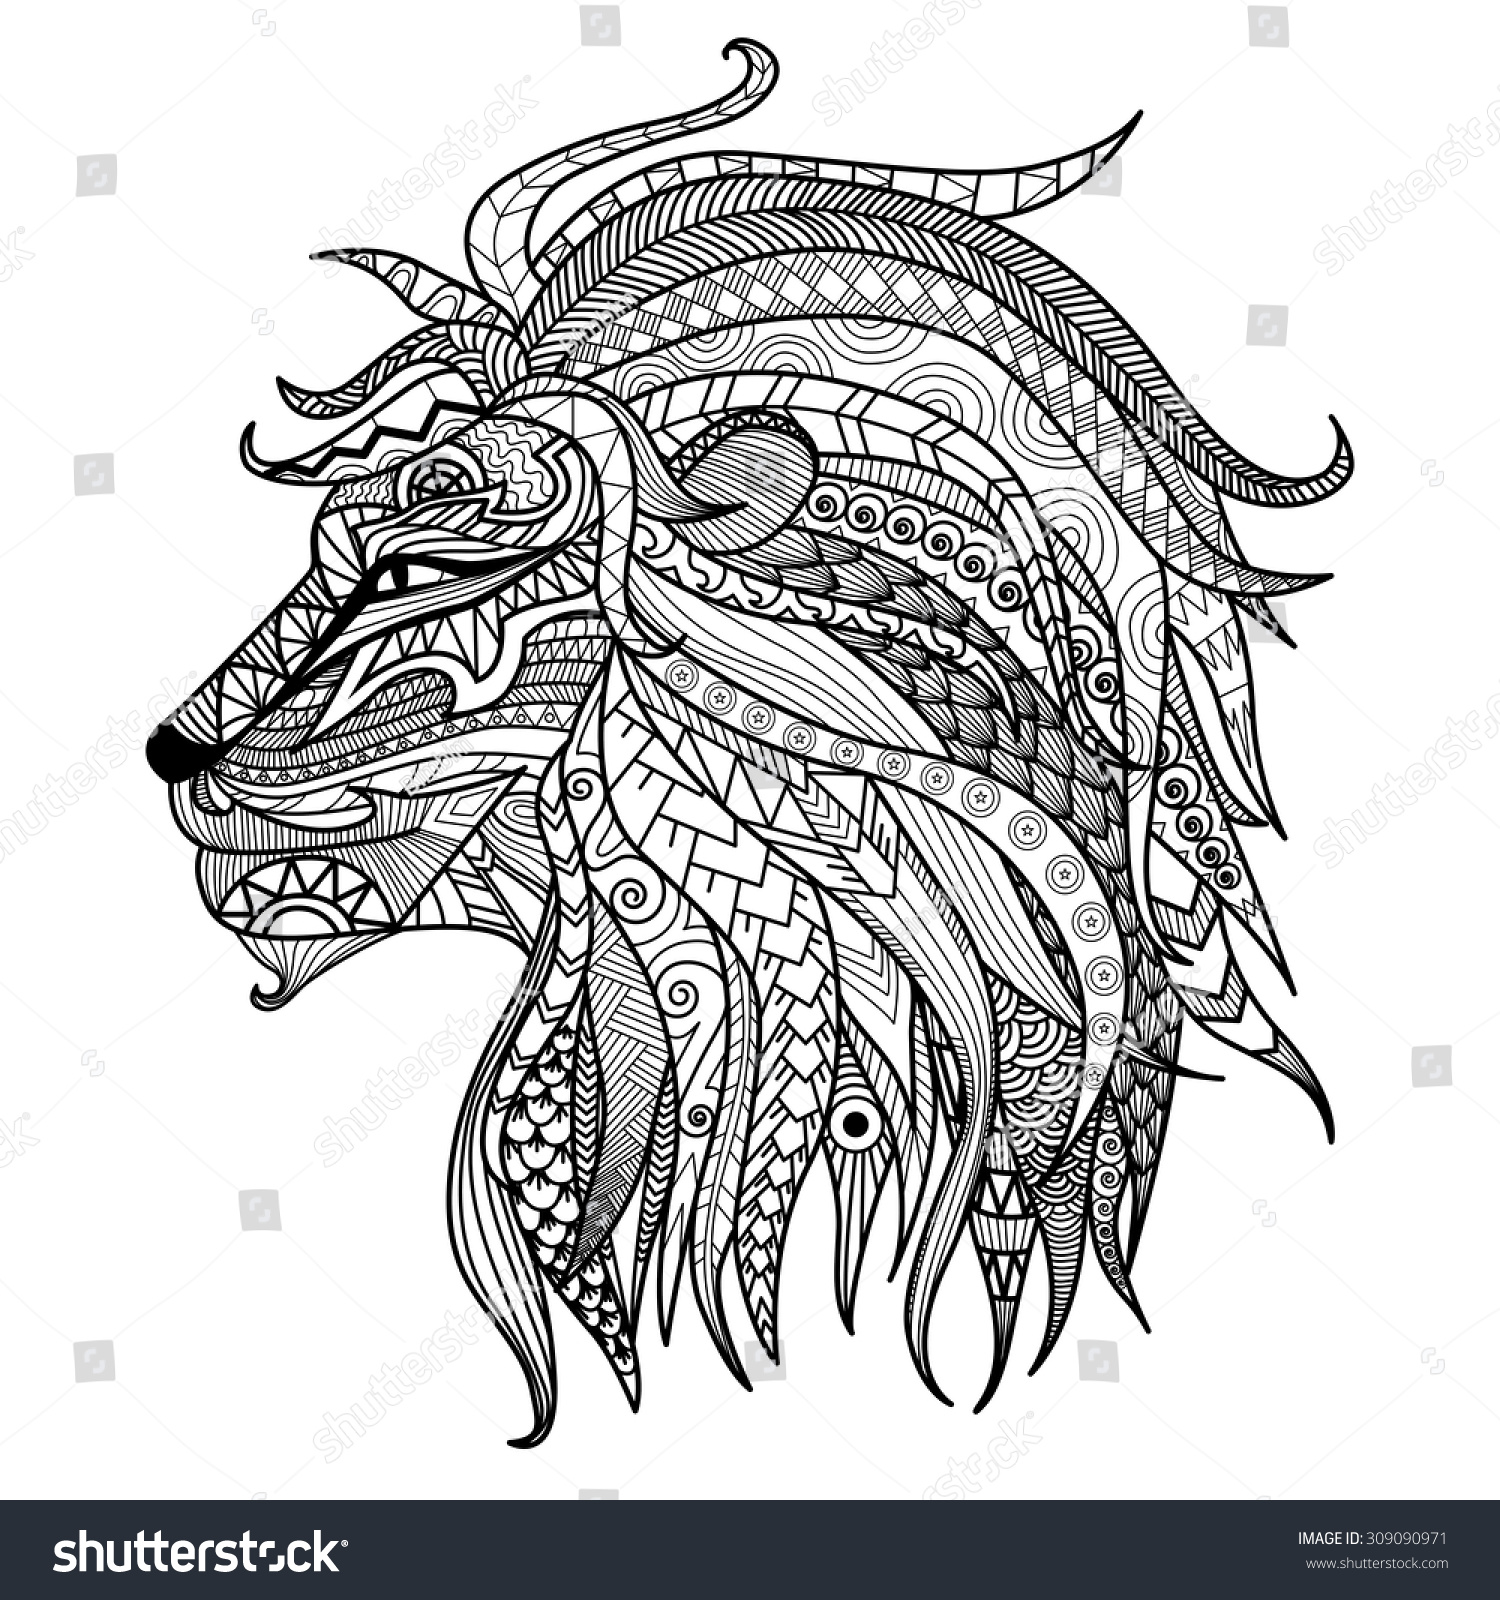 Lion head coloring pages - Hand Drawn Lion Coloring Page Stock Vector